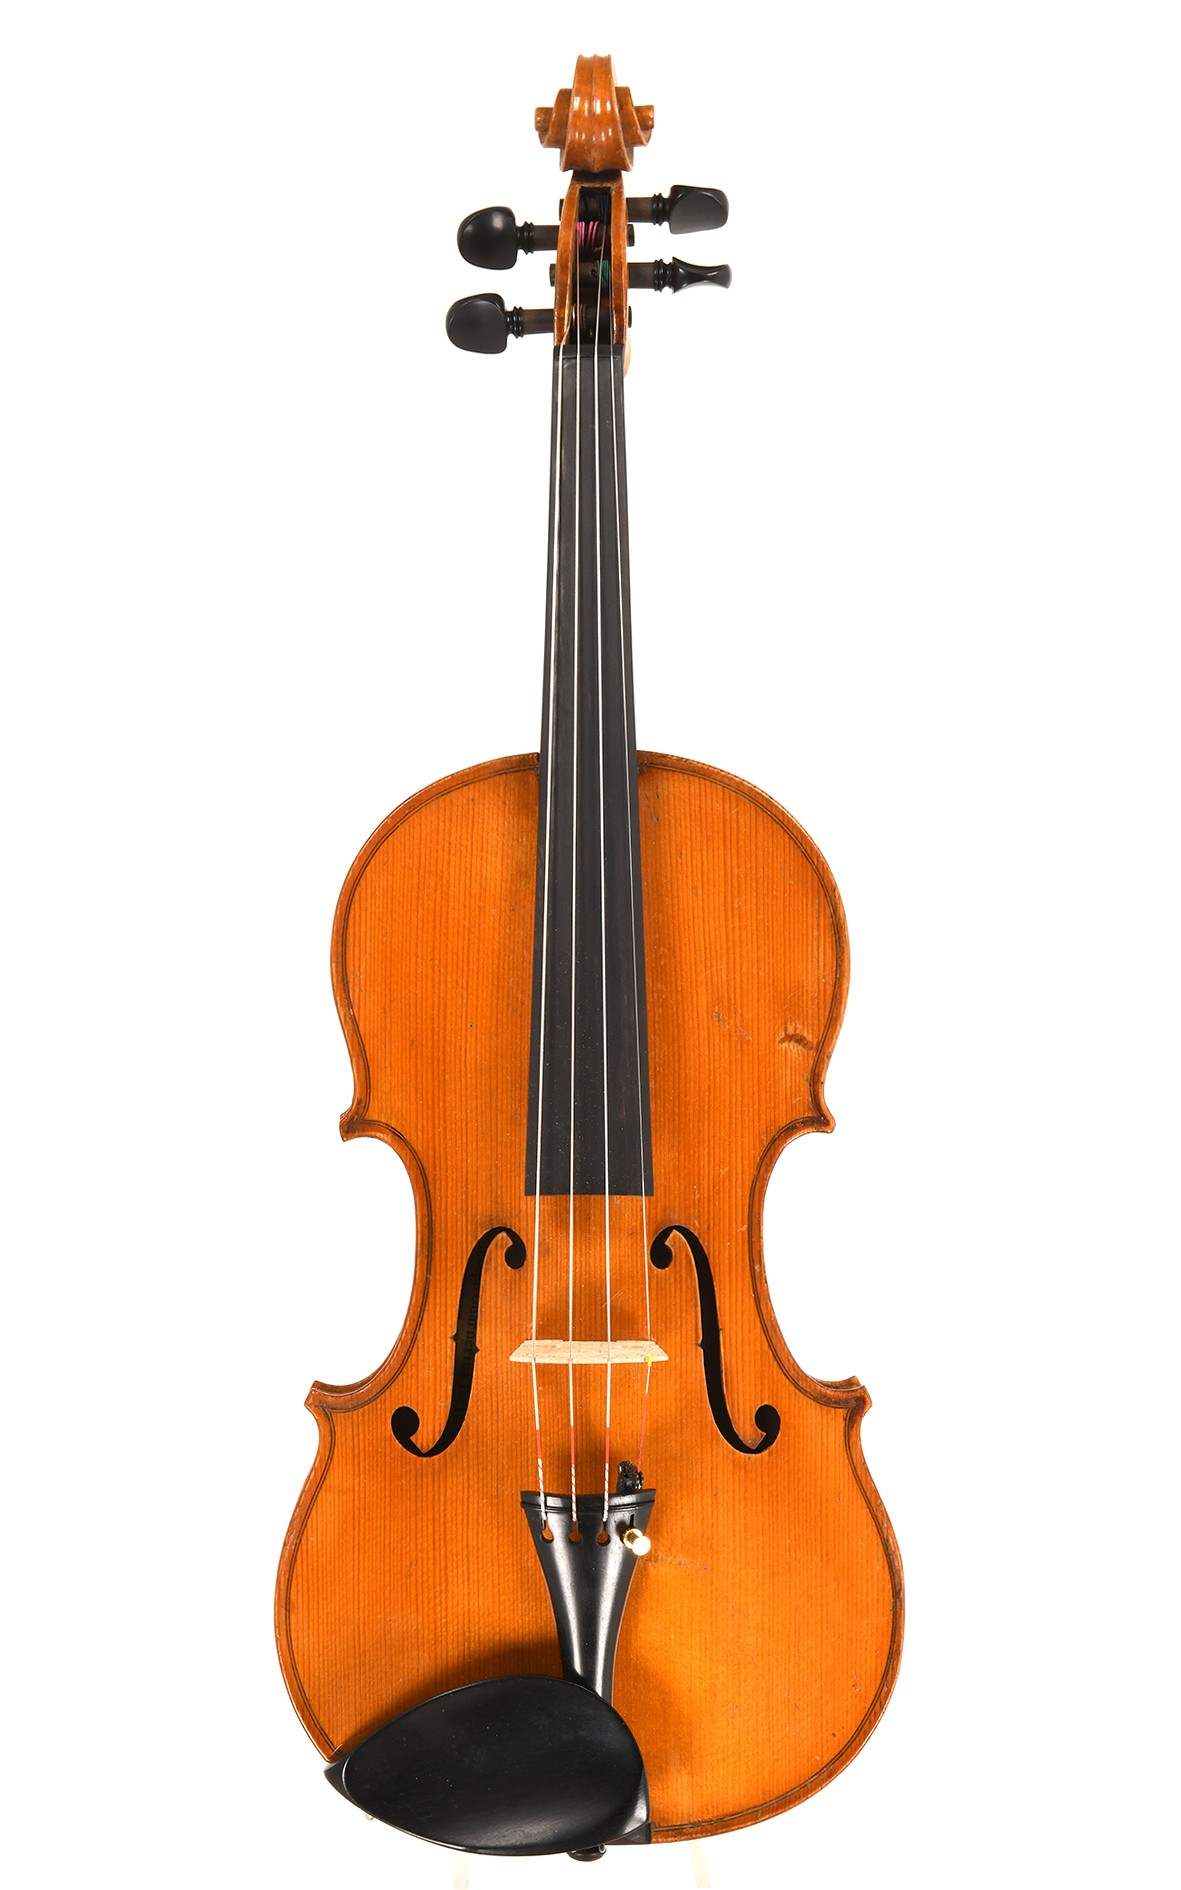 Antique French violin from Mirecourt, model Guarneri